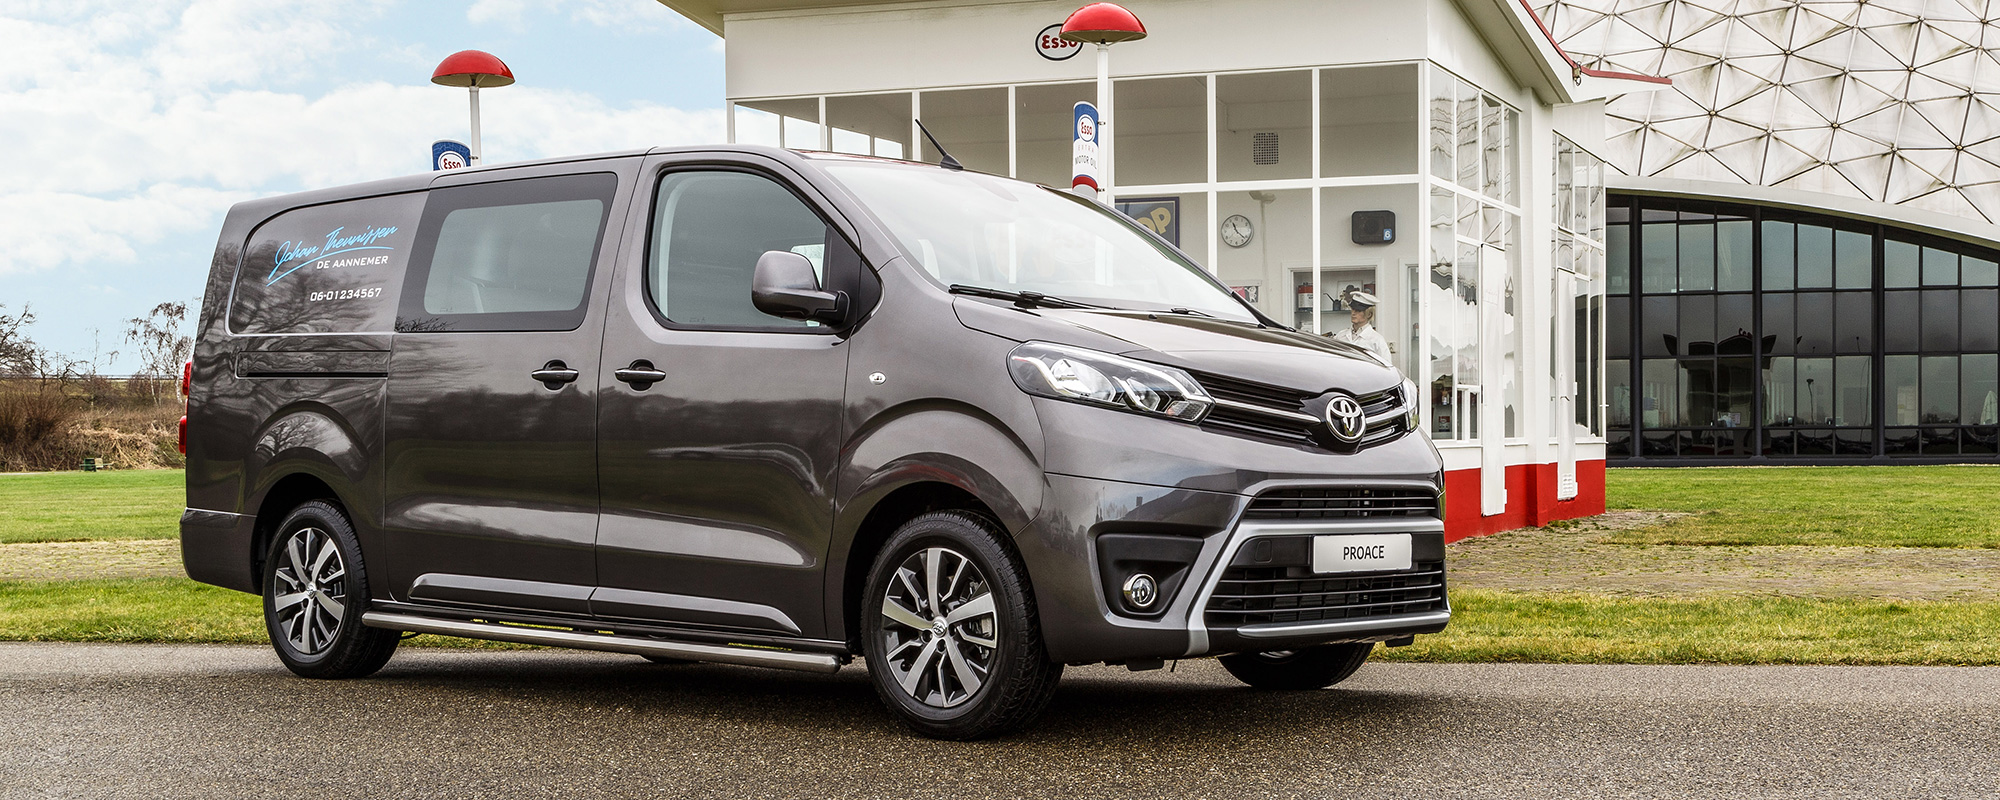 Toyota PROACE Dubbele Cabine onthuld op Bouwbeurs 2017